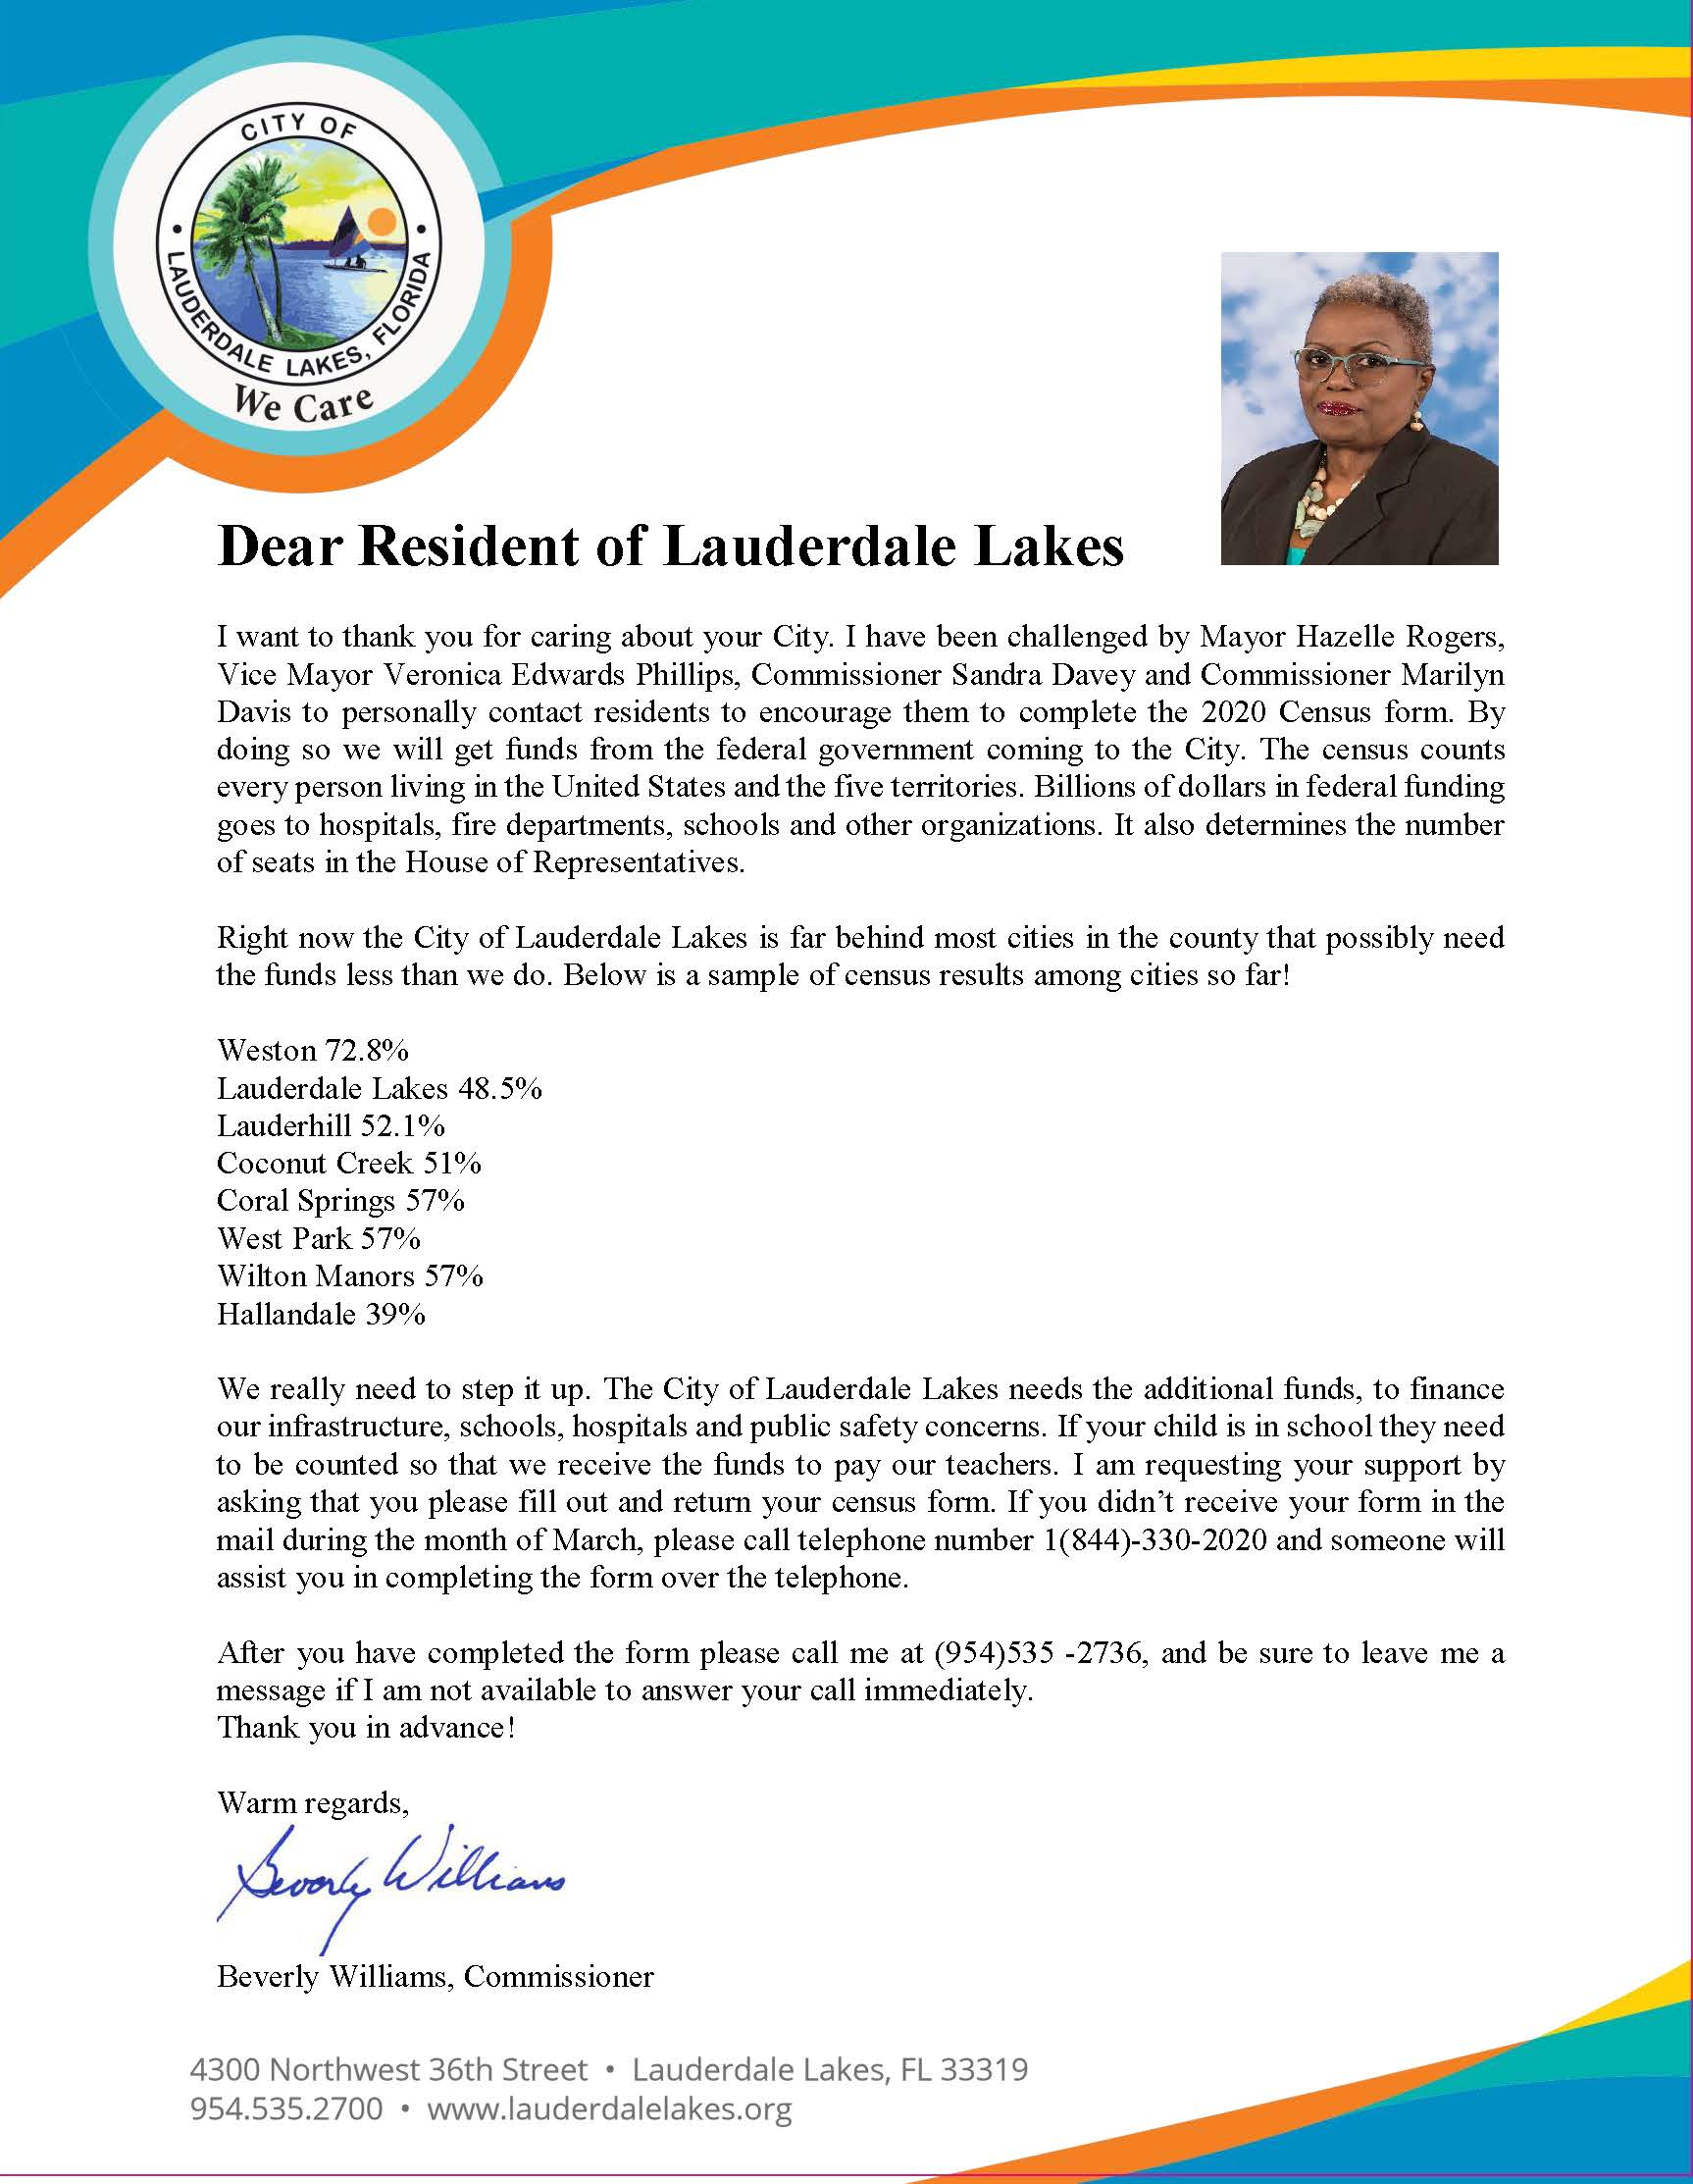 To Lauderdale Lakes Residents BW